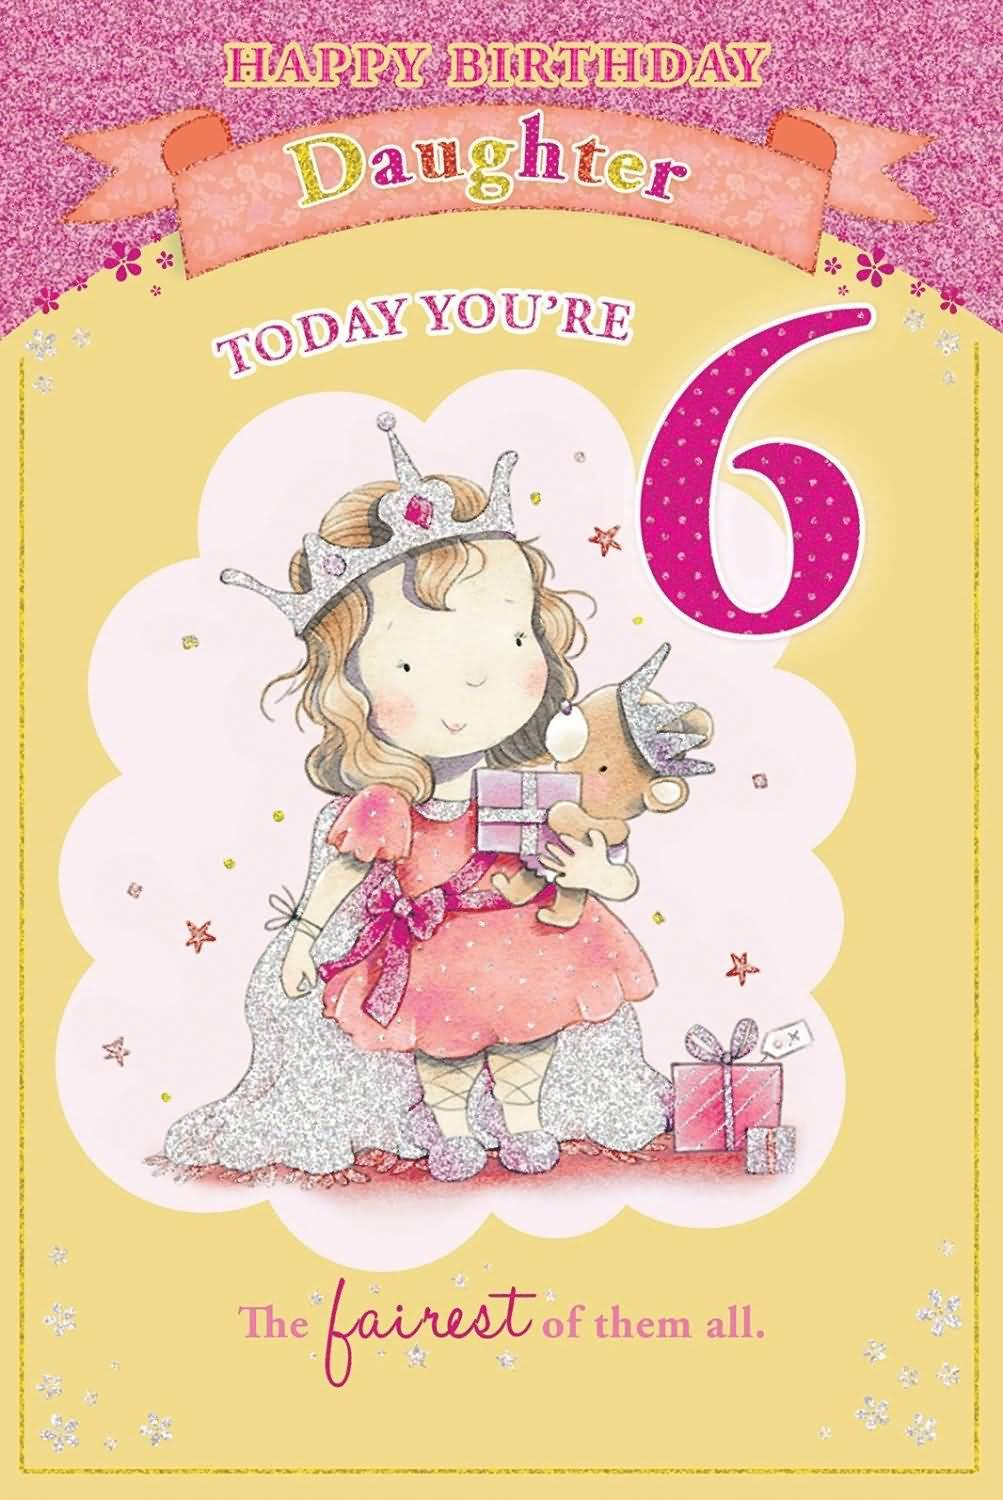 Awesome 6th Birthday Image For Facebook